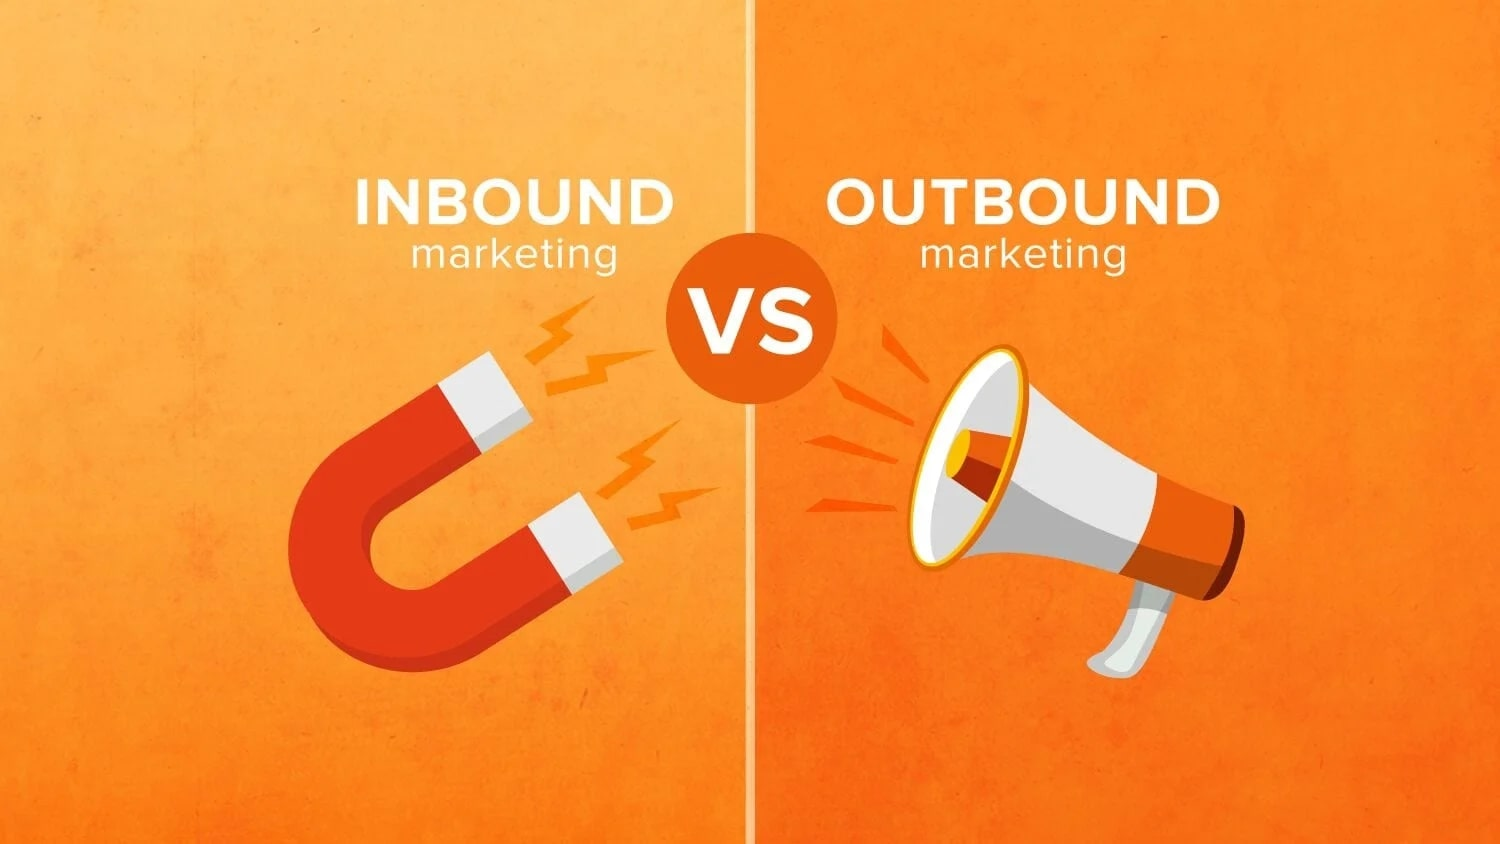 What's the difference between Inbound Marketing and Outbound Marketing?